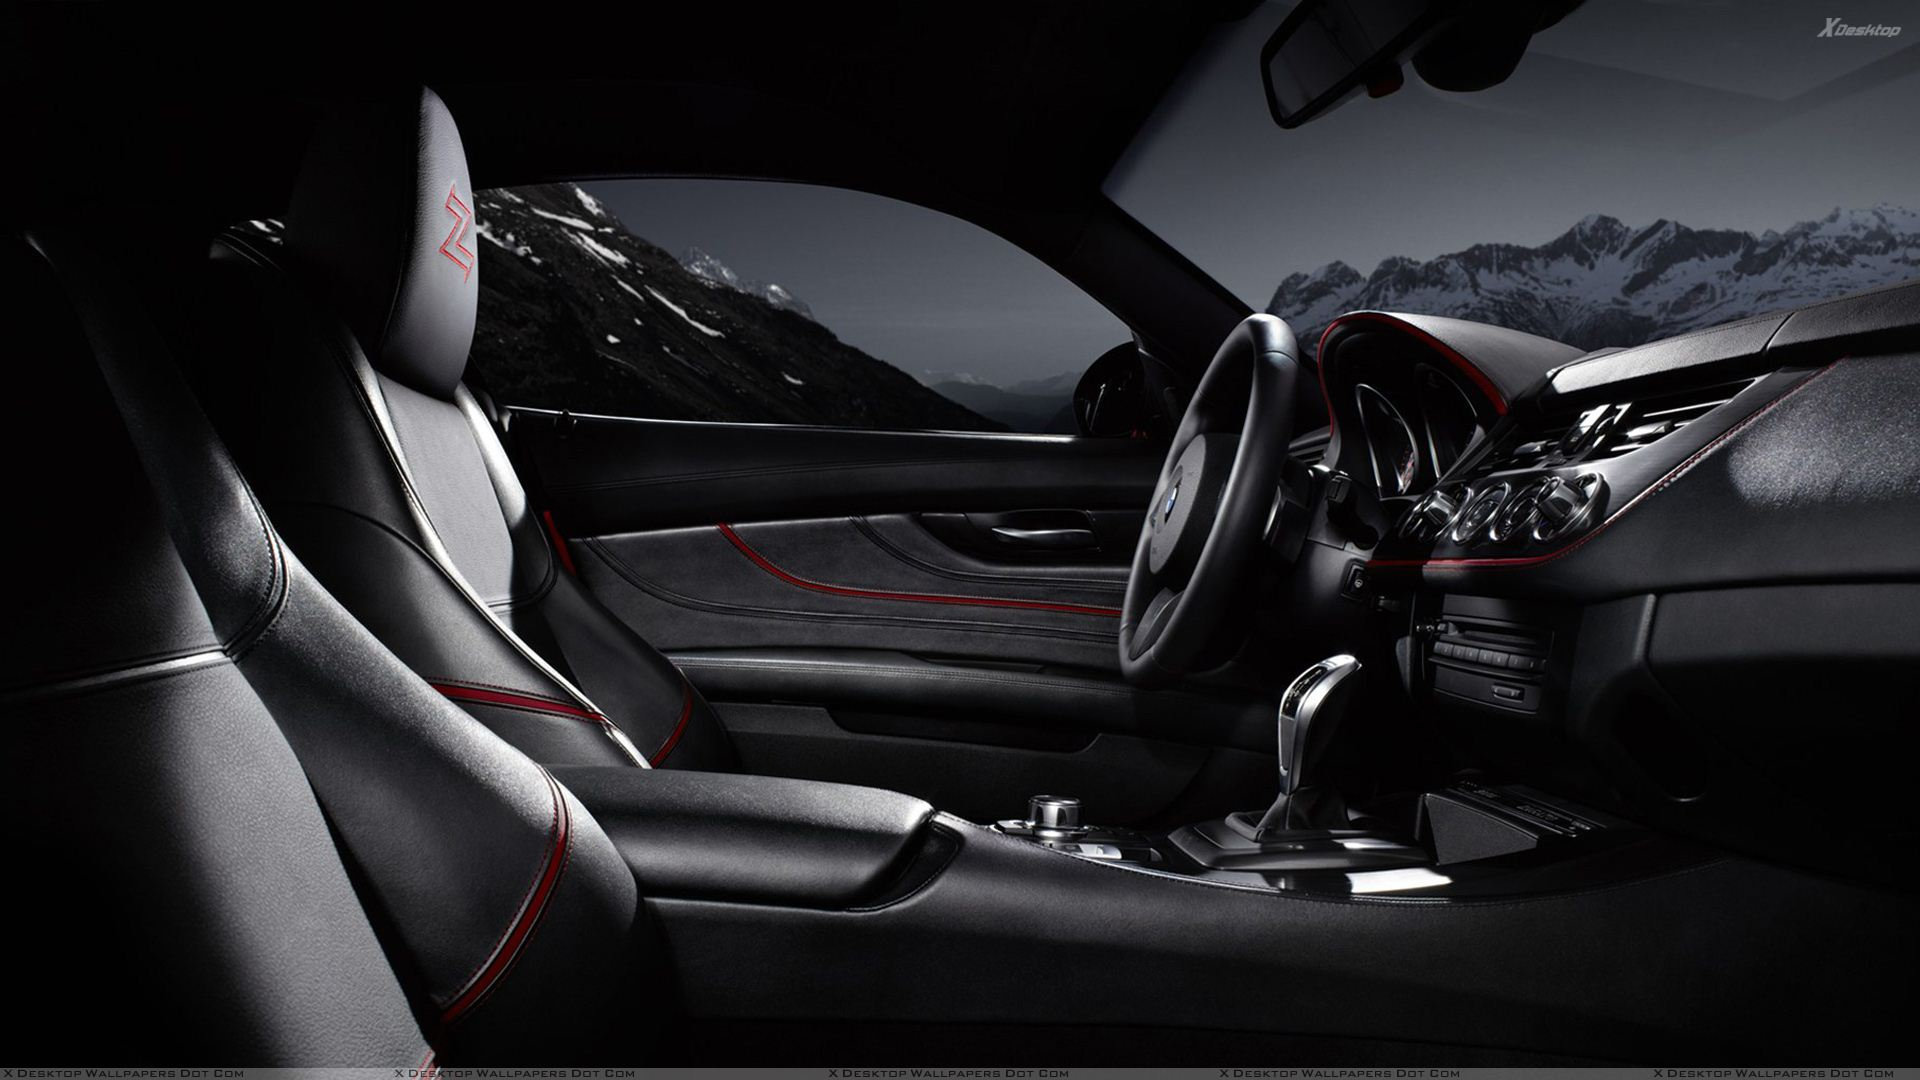 car interior wallpapers, photos & images in hd